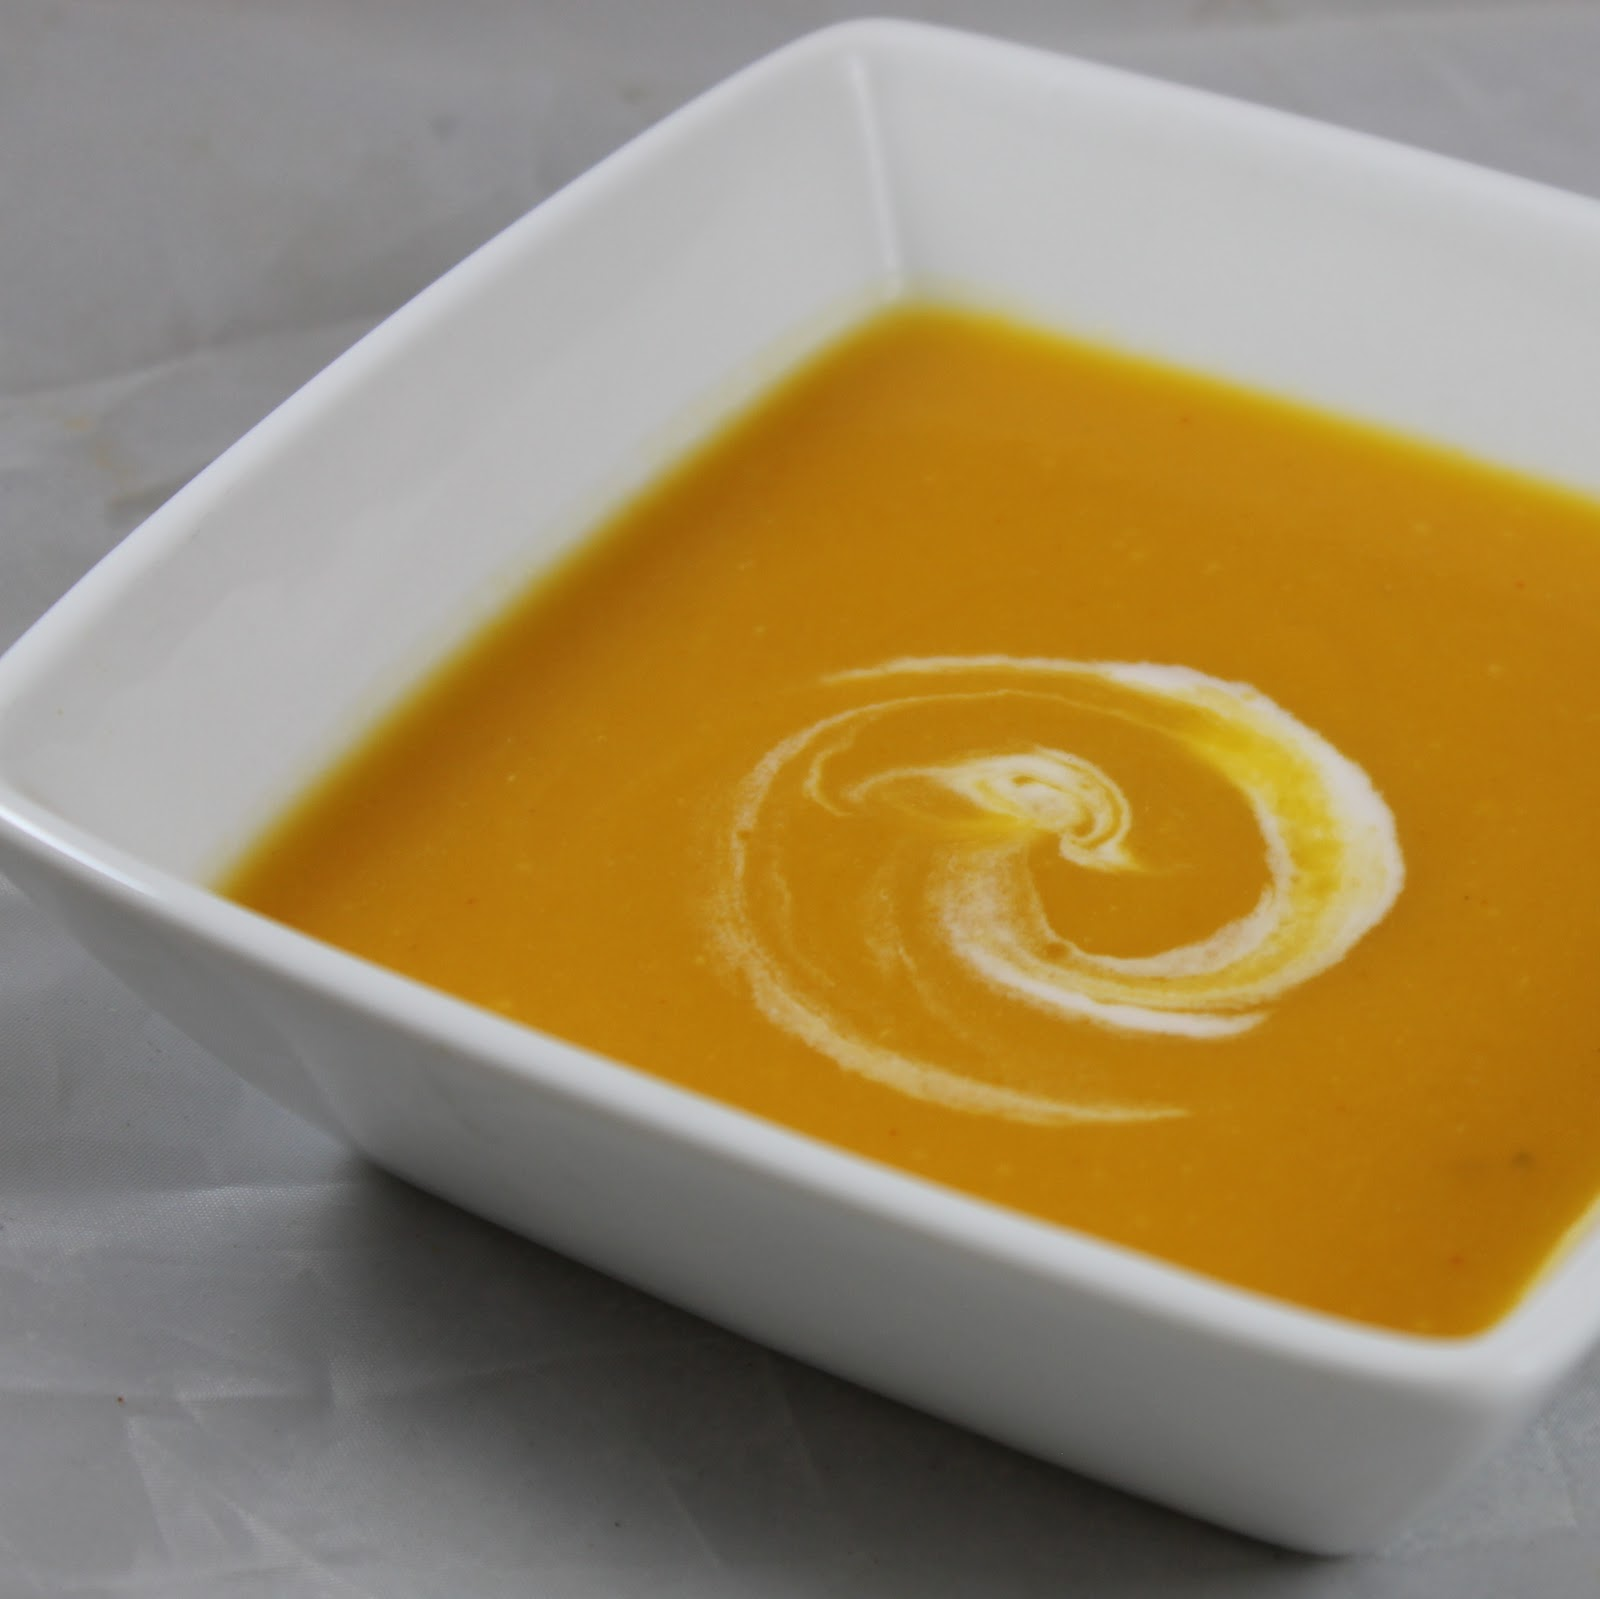 Jalapeño-Ginger Butternut Squash Soup | I Can Cook That